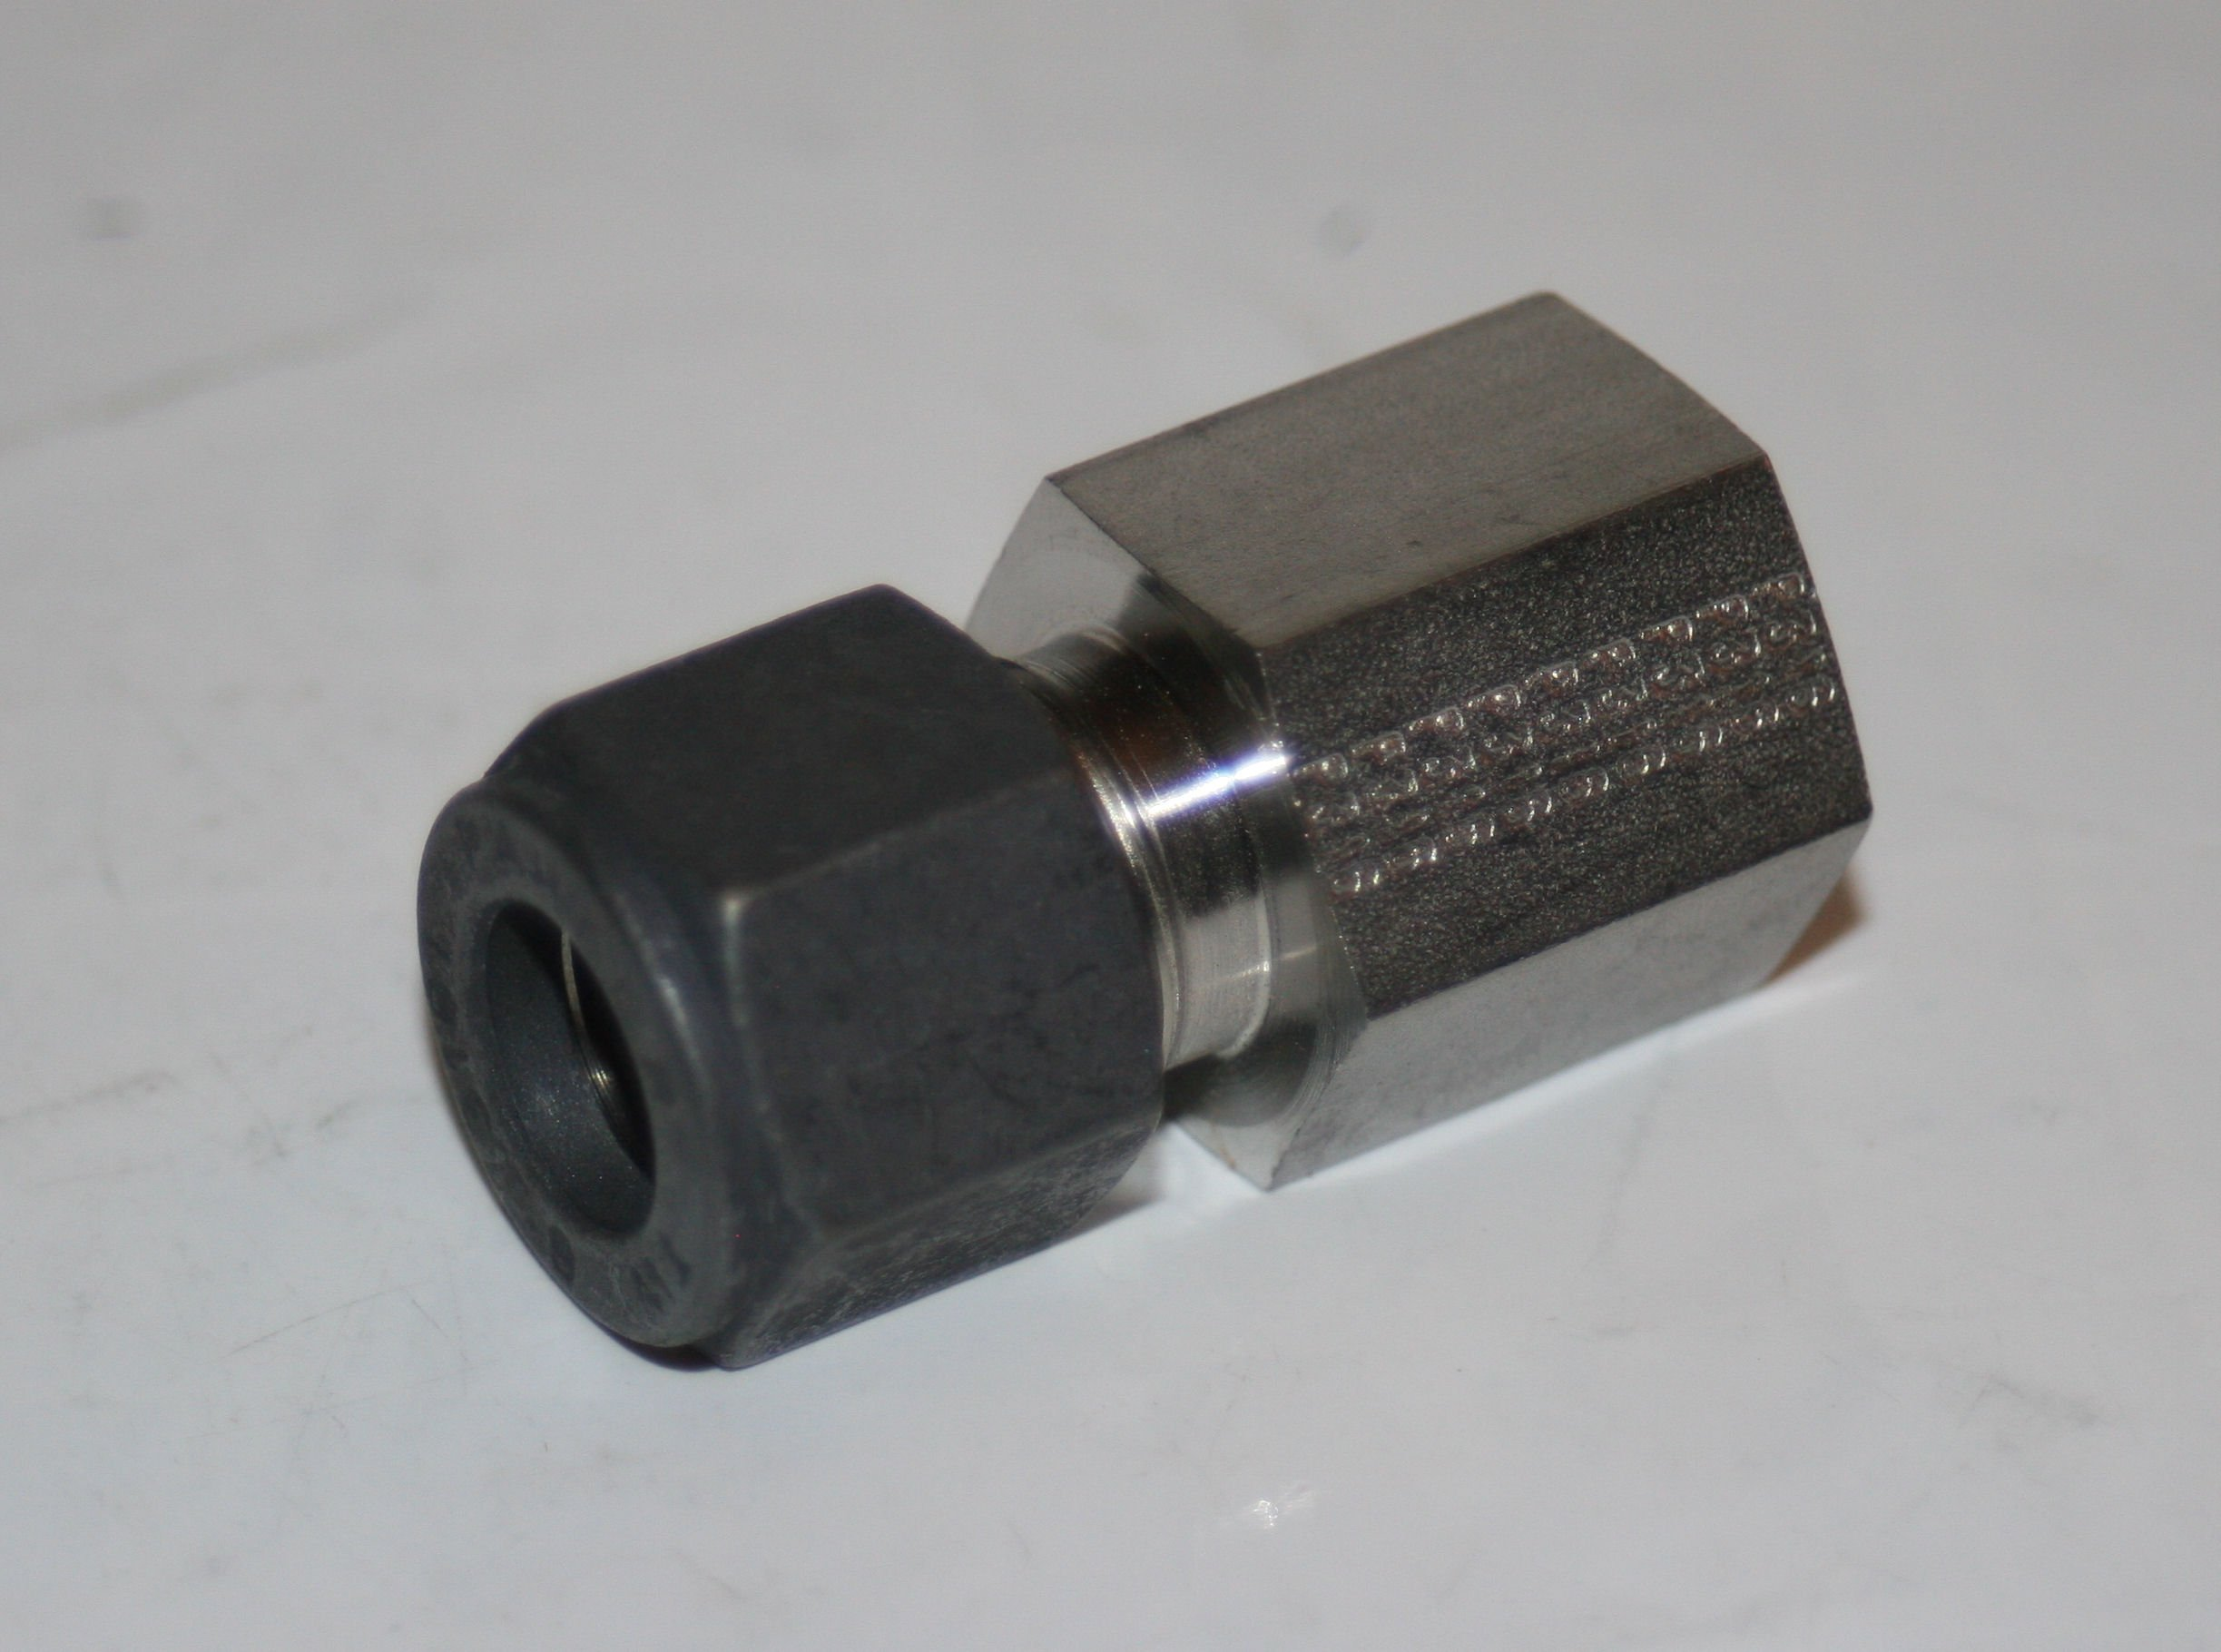 Parker CPI 6-4 GBZ-SS 316 Stainless Steel Compression Tube Fitting, Adapter, 3/8'' Tube OD x 1/4'' NPT Female